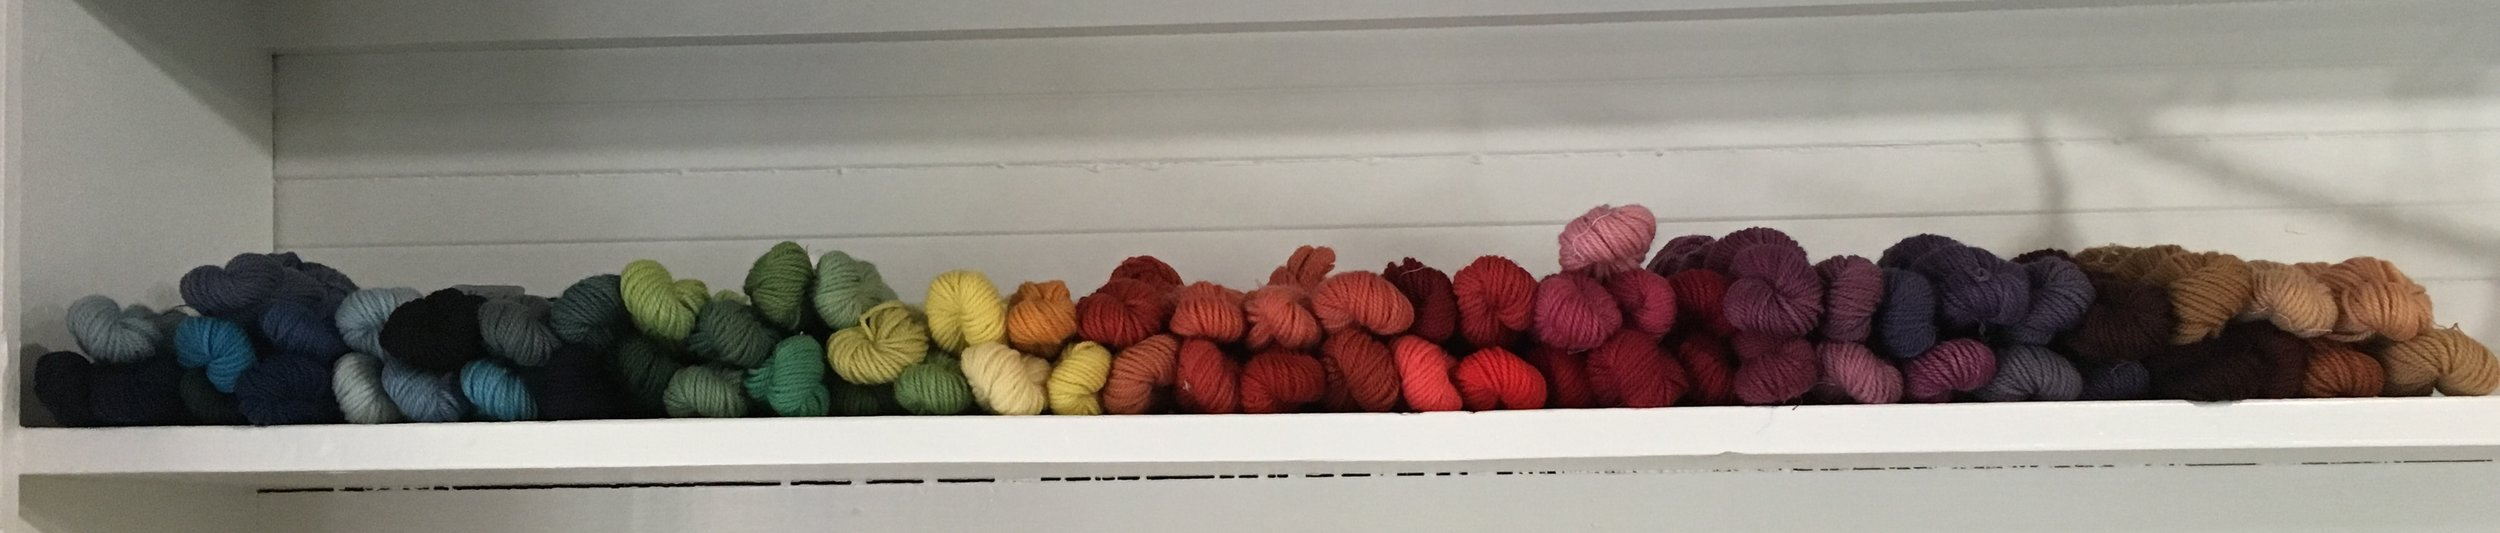 Woolen yarn dyed with indigo, madder root, cochineal (insects), lac, osage orange sawdust, weld, logwood, sappan wood, black walnut and cutch. (See also natural dyeing classes - 40-60 colors from natural dyes, 2-4 day classes)